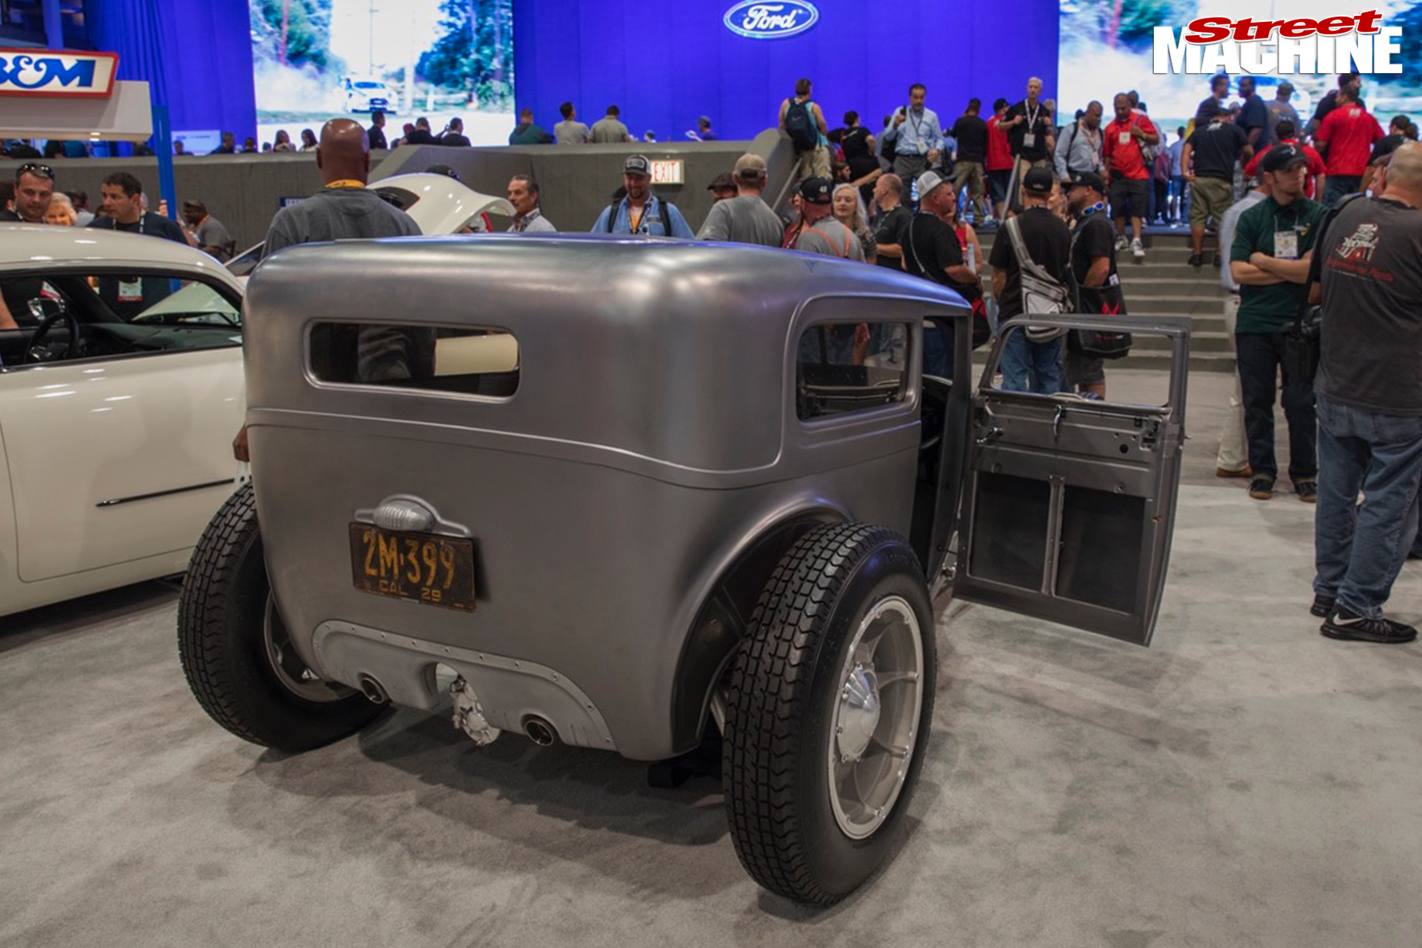 RL59312-ford -coupe -hot -rod -rear